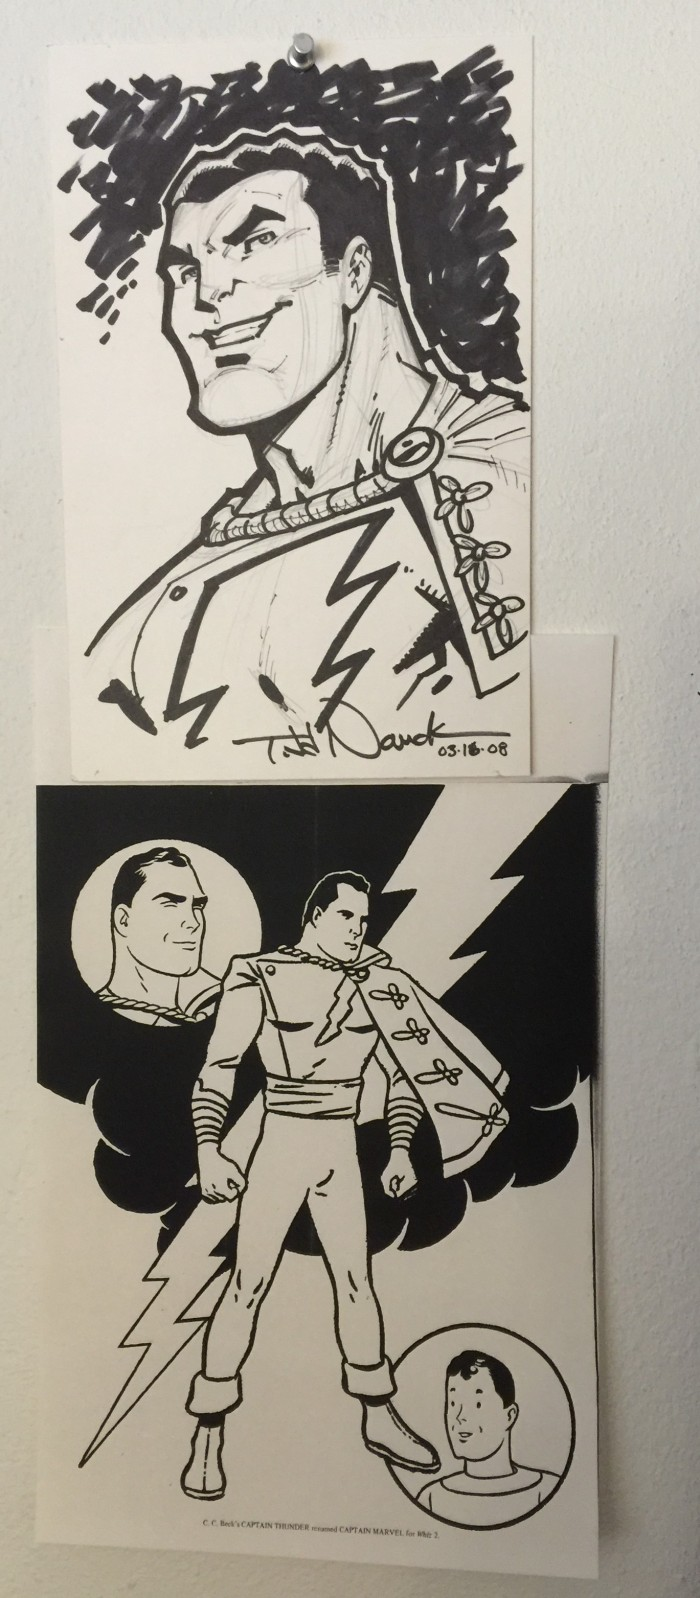 Todd Nauck Shazam sketches on Hathaway's studio wall